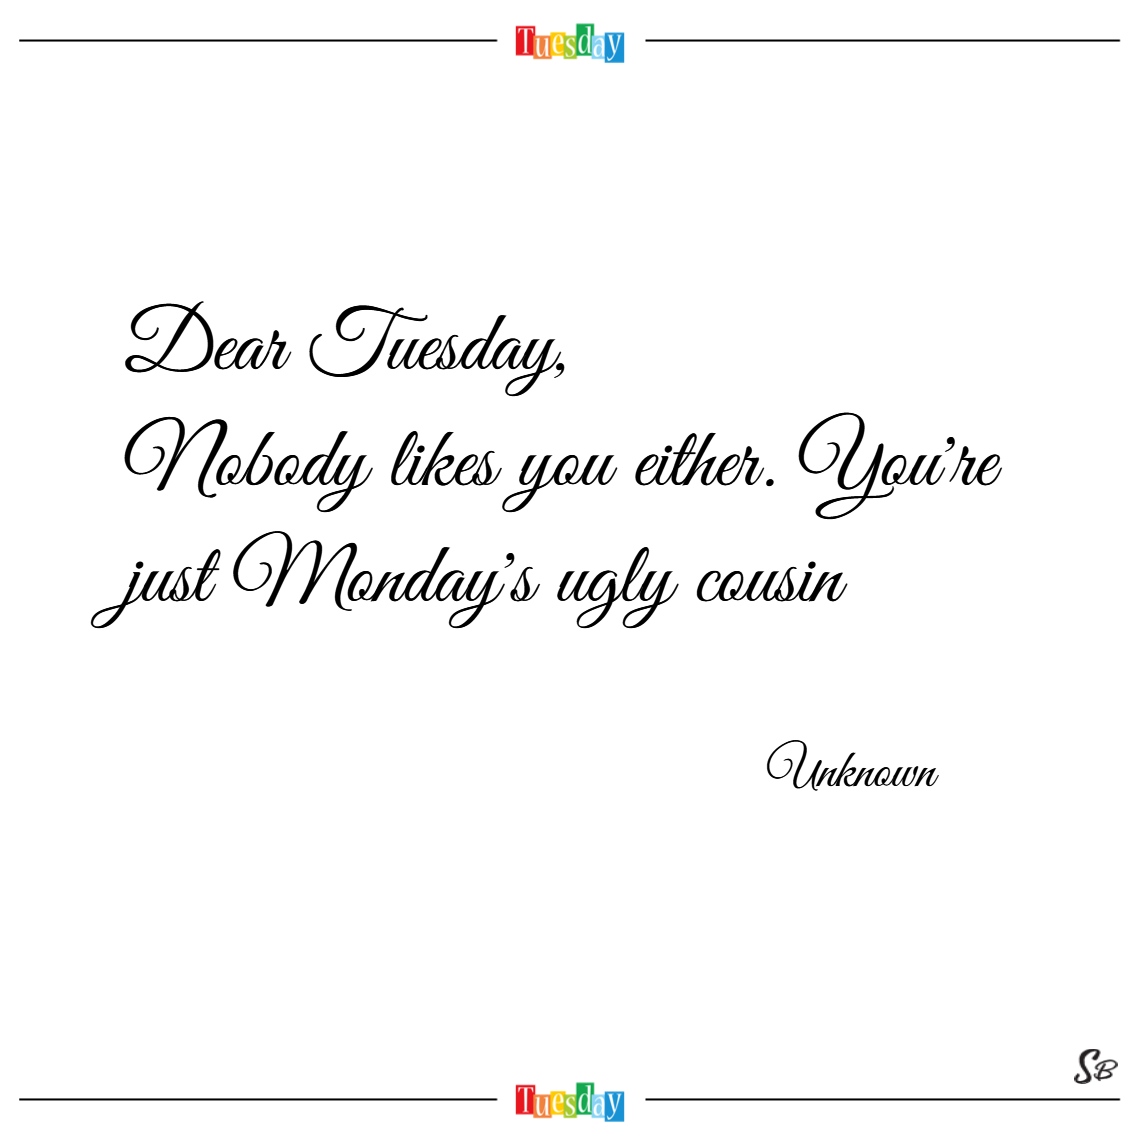 Dear tuesday, nobody likes you either. you're just monday's ugly cousin. – unknown